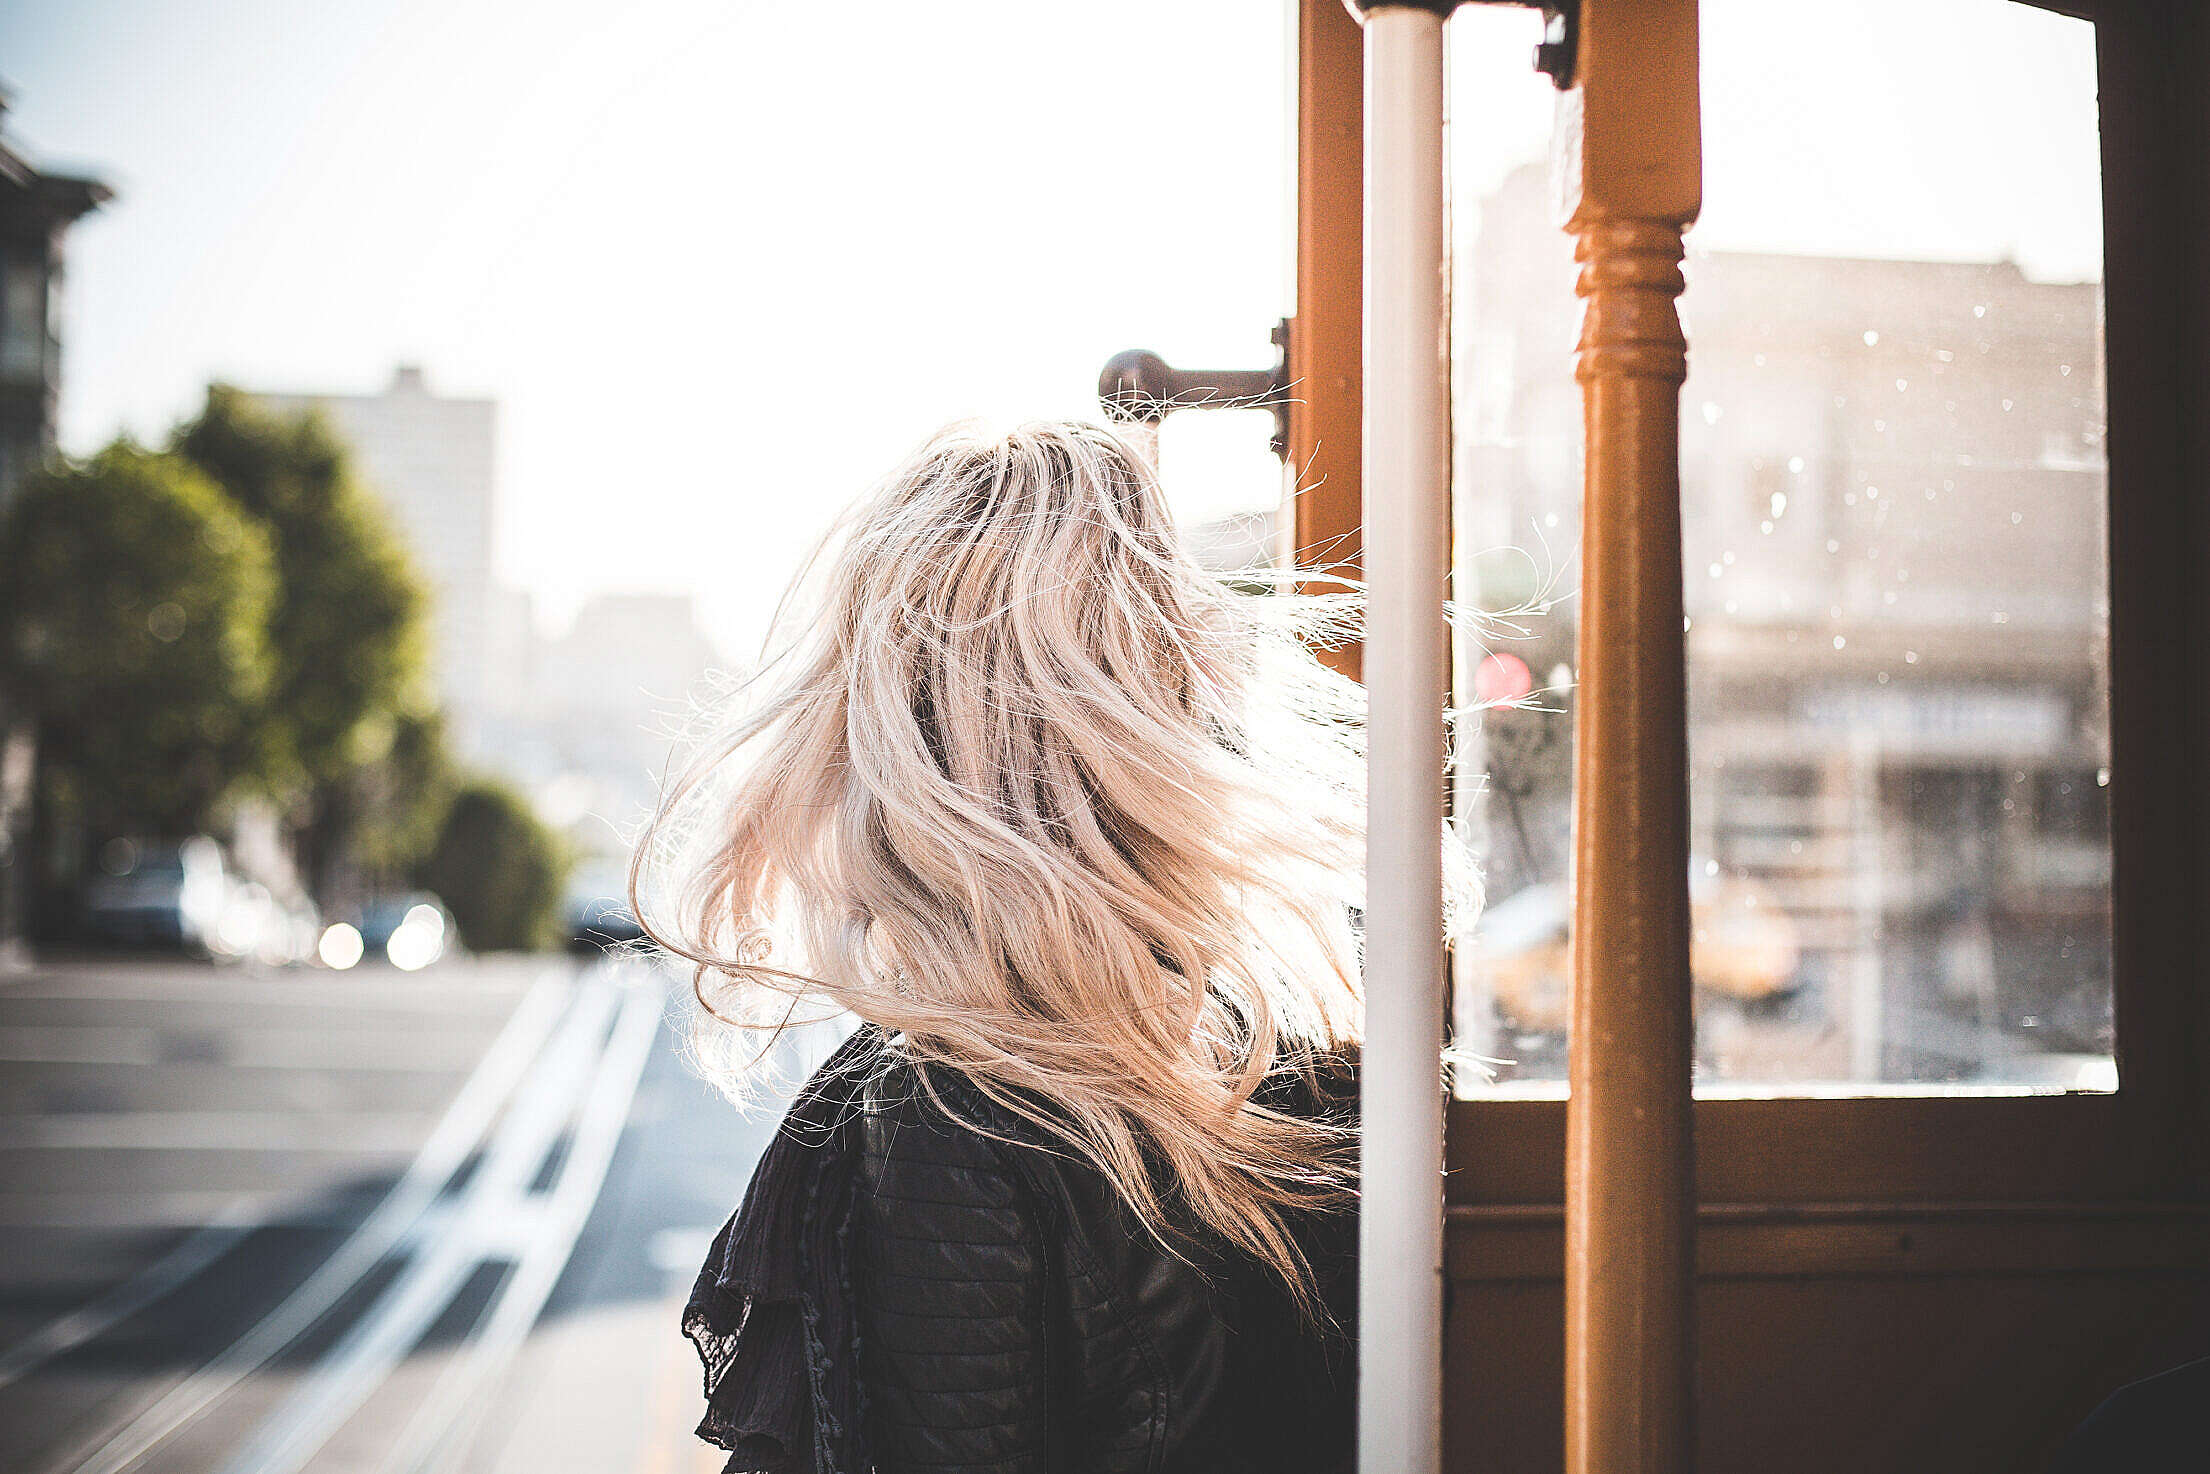 Young Woman Enjoying Ride on an Iconic Cable Car in San Francisco #2 Free Stock Photo